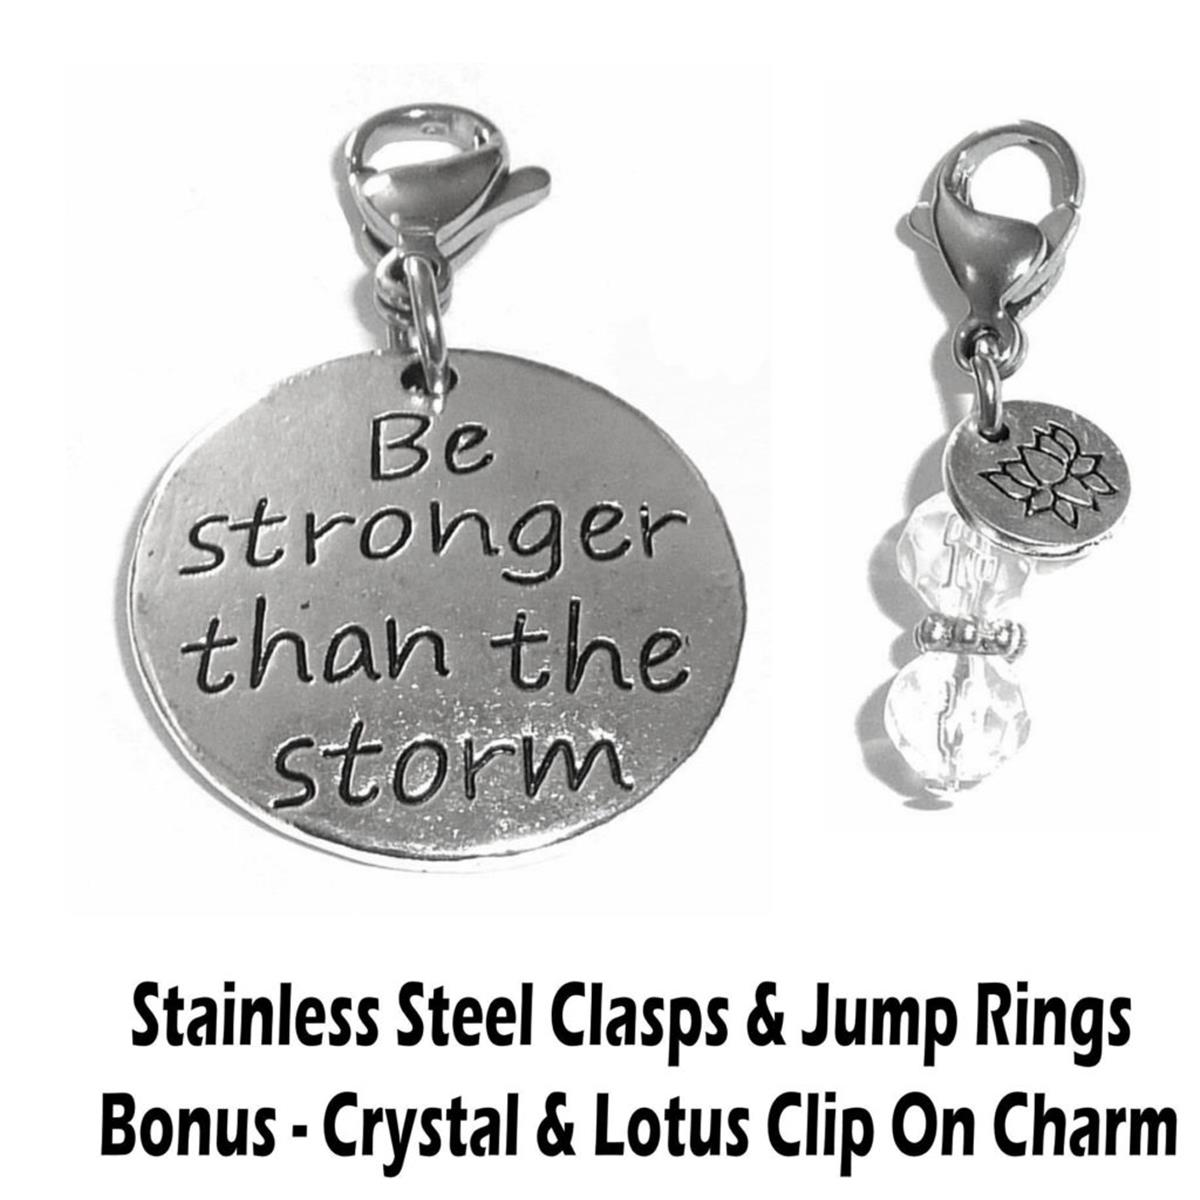 Be stronger than the storm clip on charm - inspirational charms